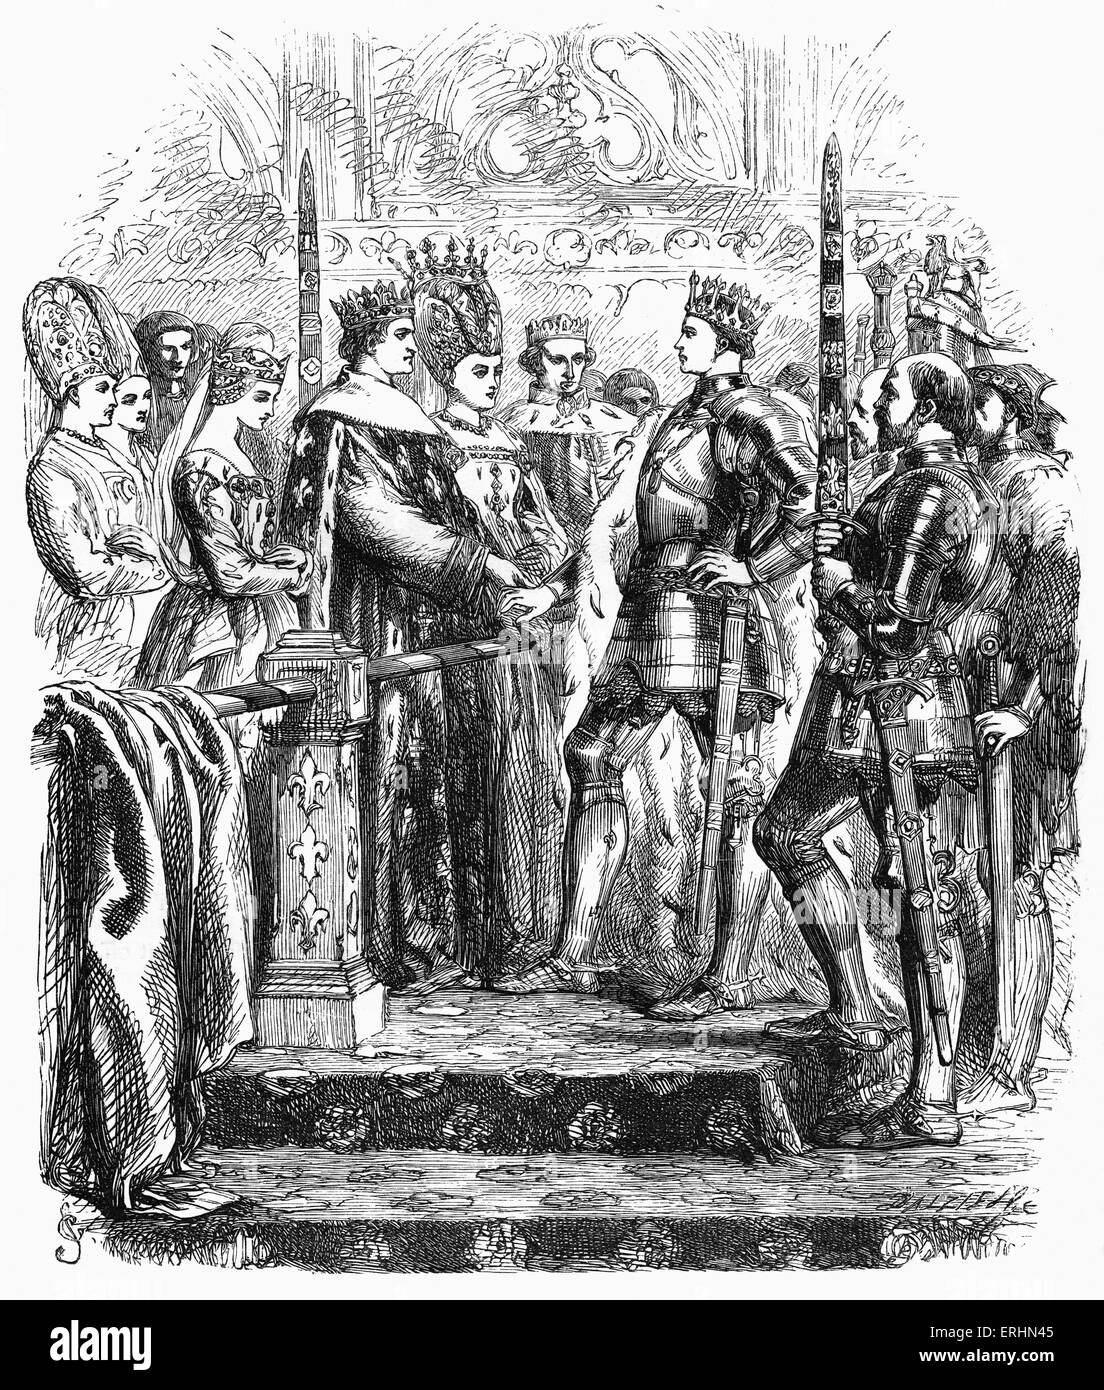 William Shakespeare 's play 'King Henry V' - portrait of King Henry V of England meeting the King & - Stock Image